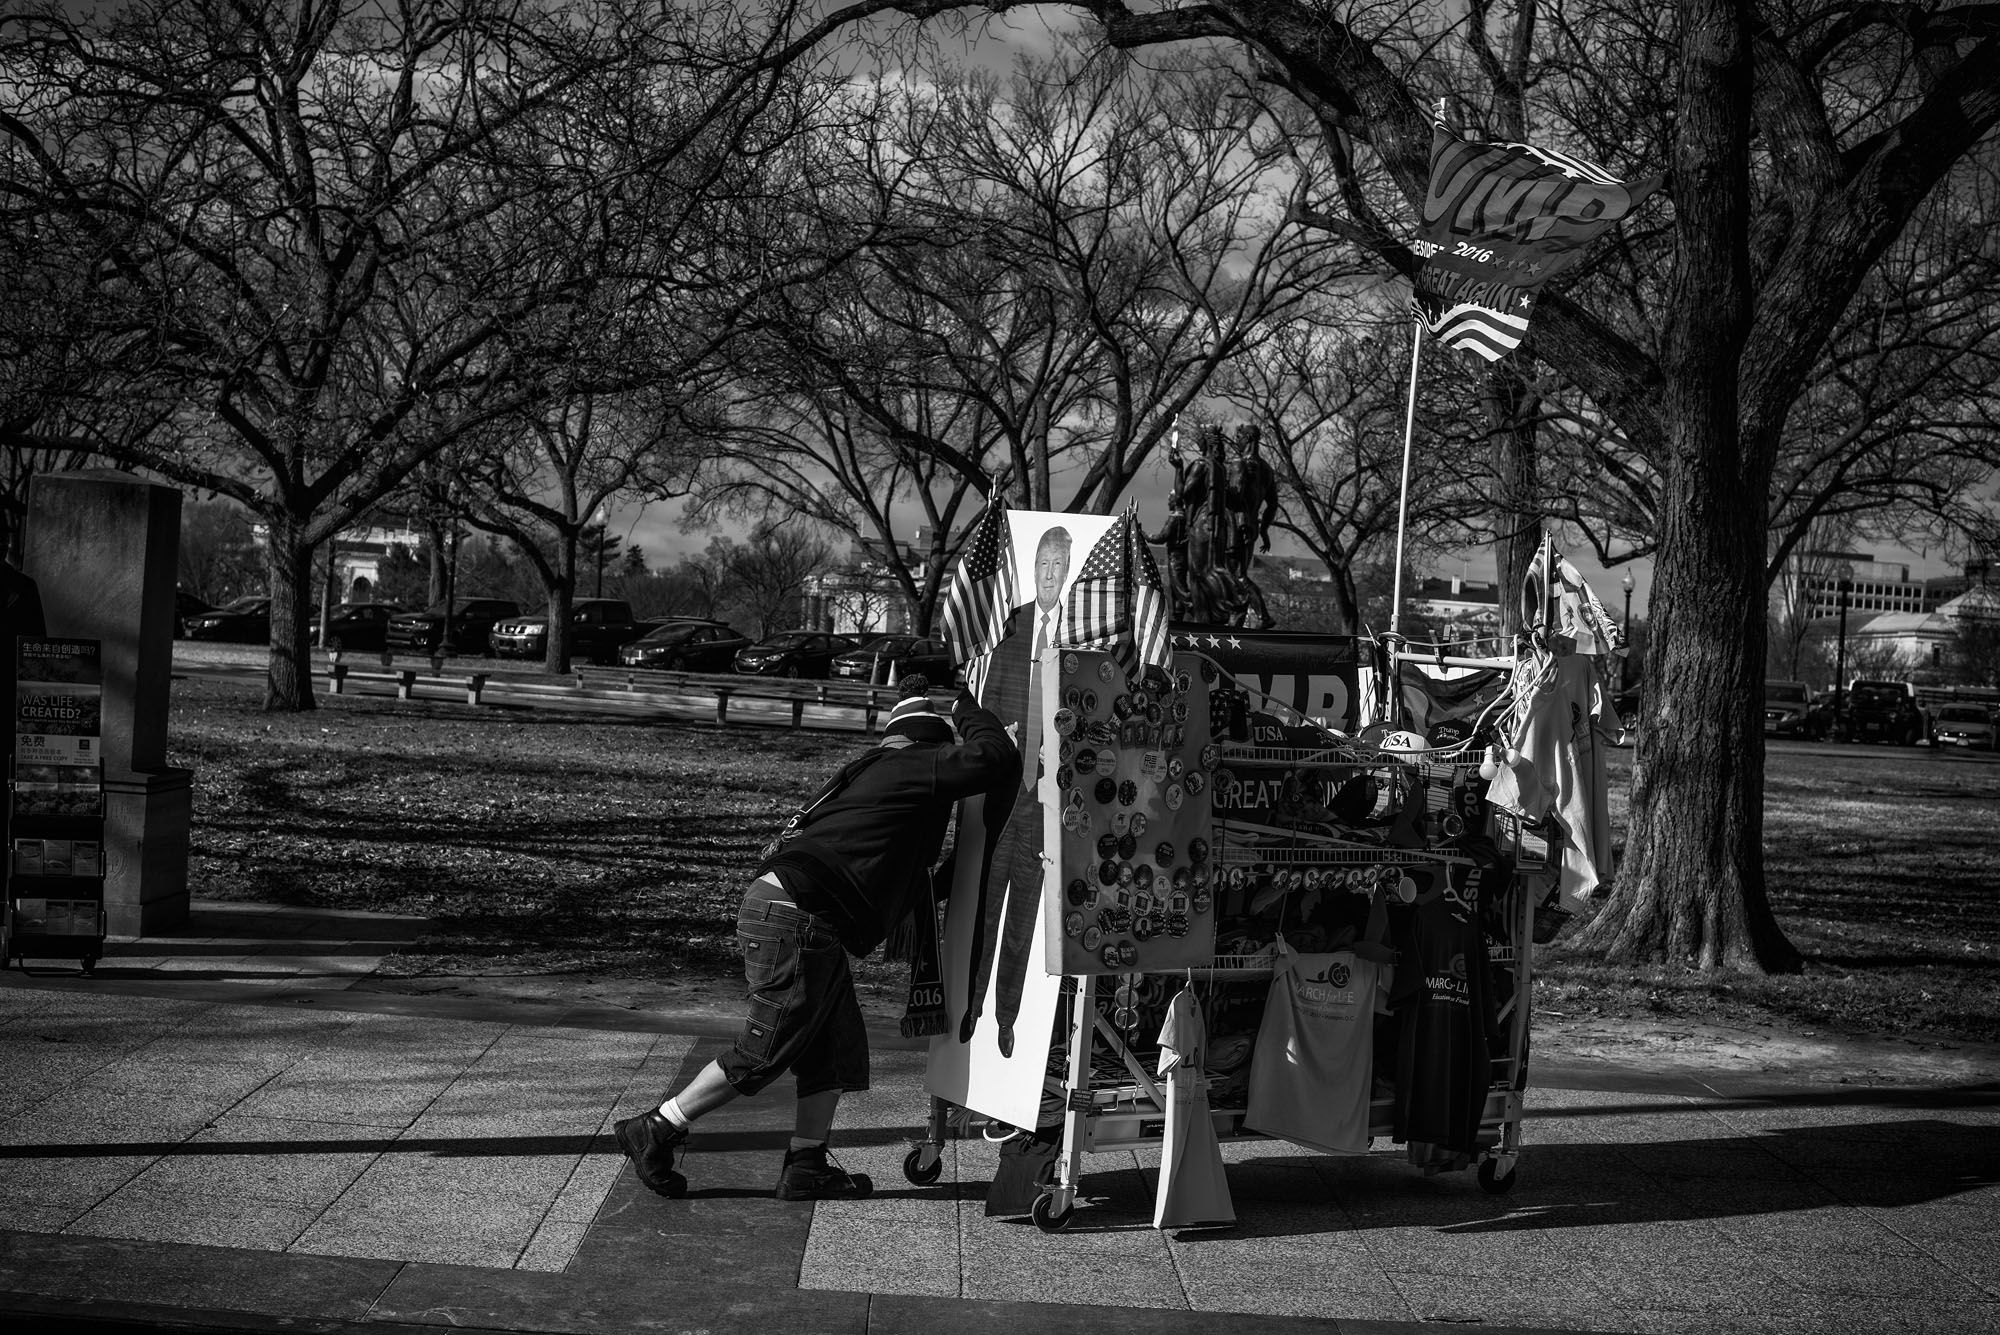 A vendor pushes his cart up 17th Street NW at the March for Life, on January 27, 2017.